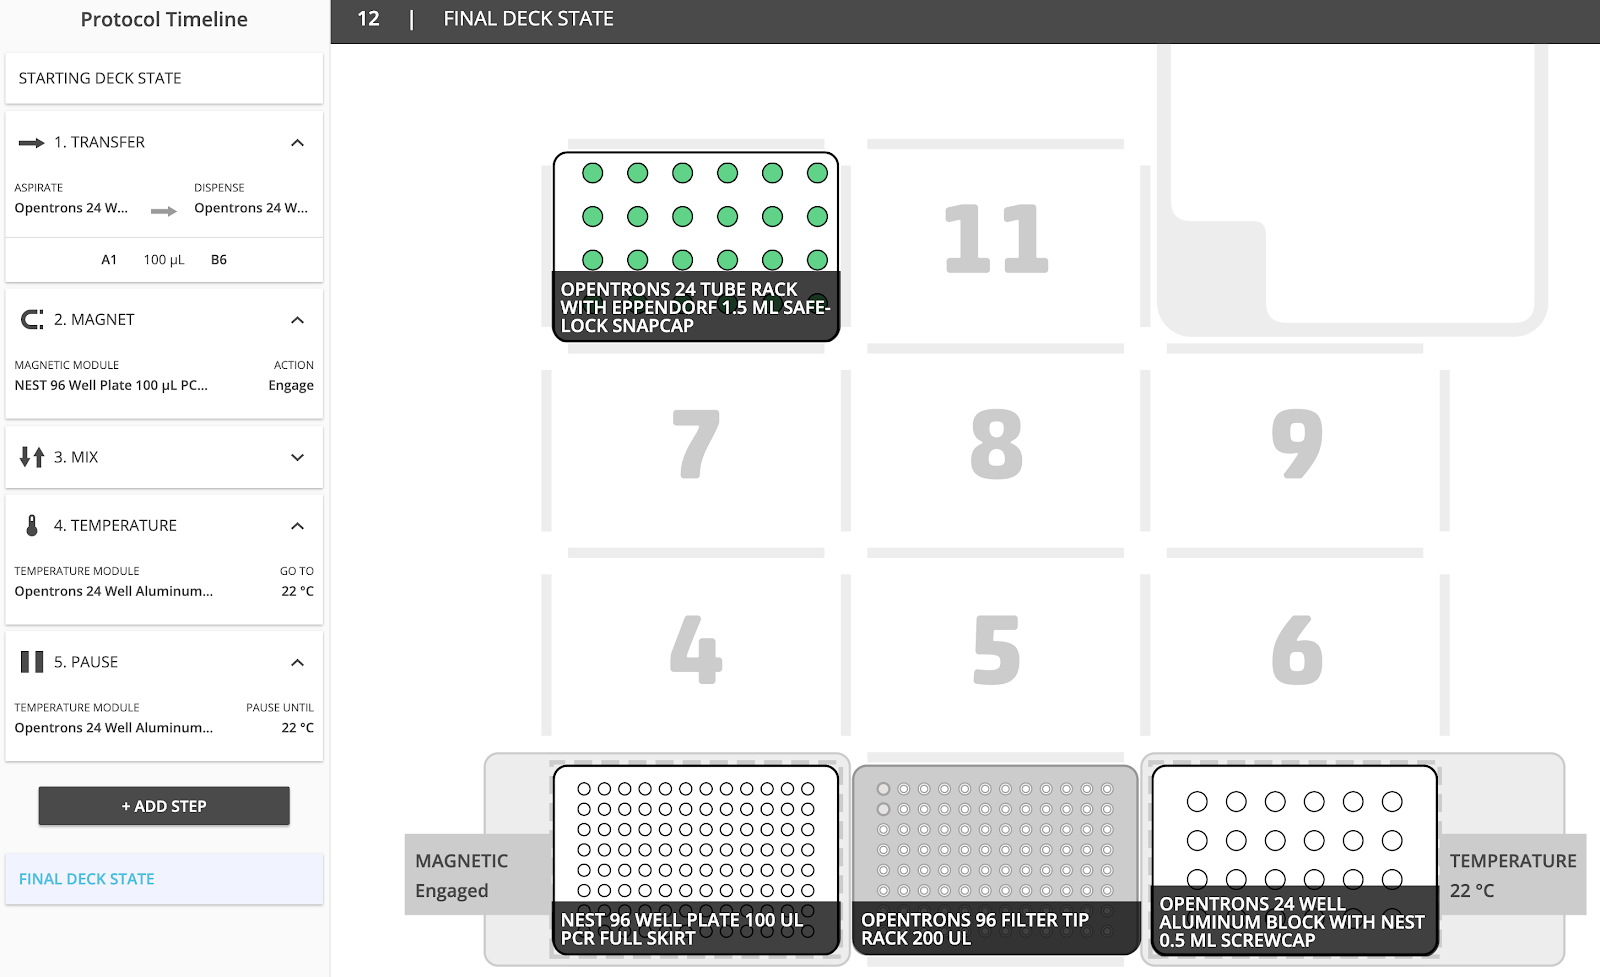 Image of deck layout for sample protocol